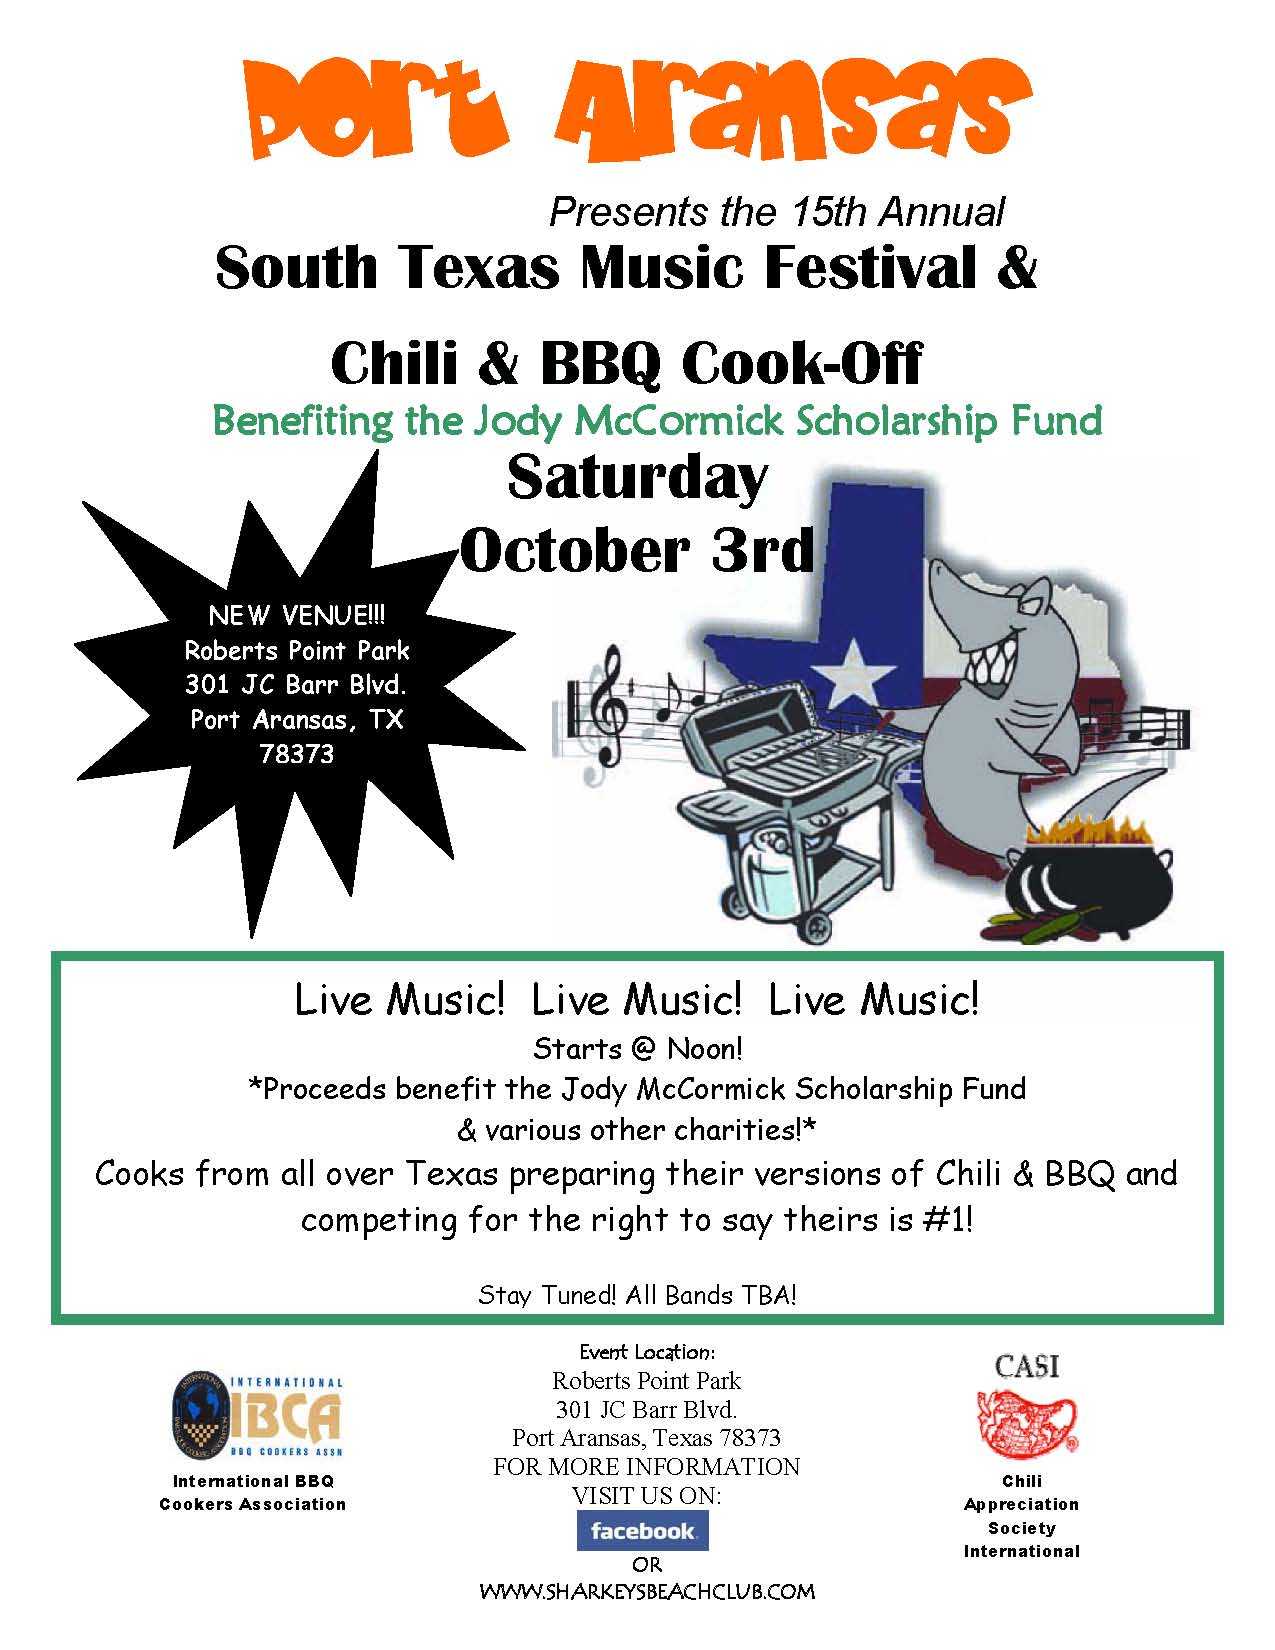 South Texas Music Fest Oct 3rd in Port Aransas, Texas.